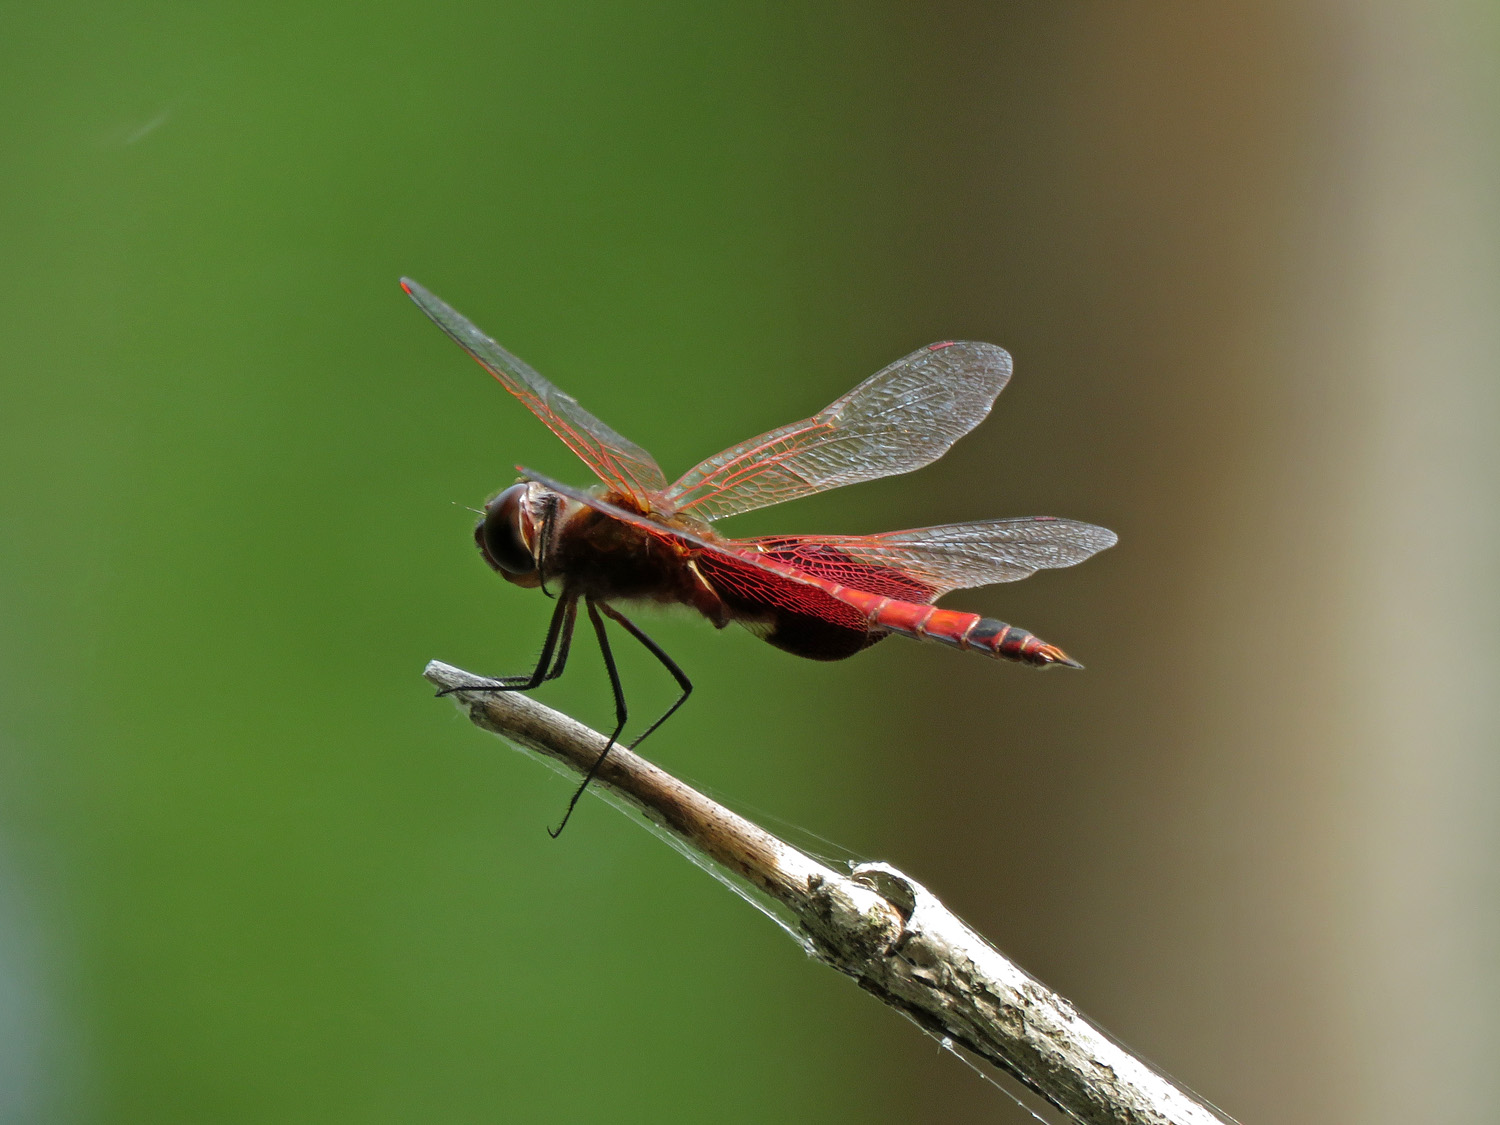 A dragonfly, possibly red saddlebags???, North Mt. Loretto State Forest, May 22, 2019